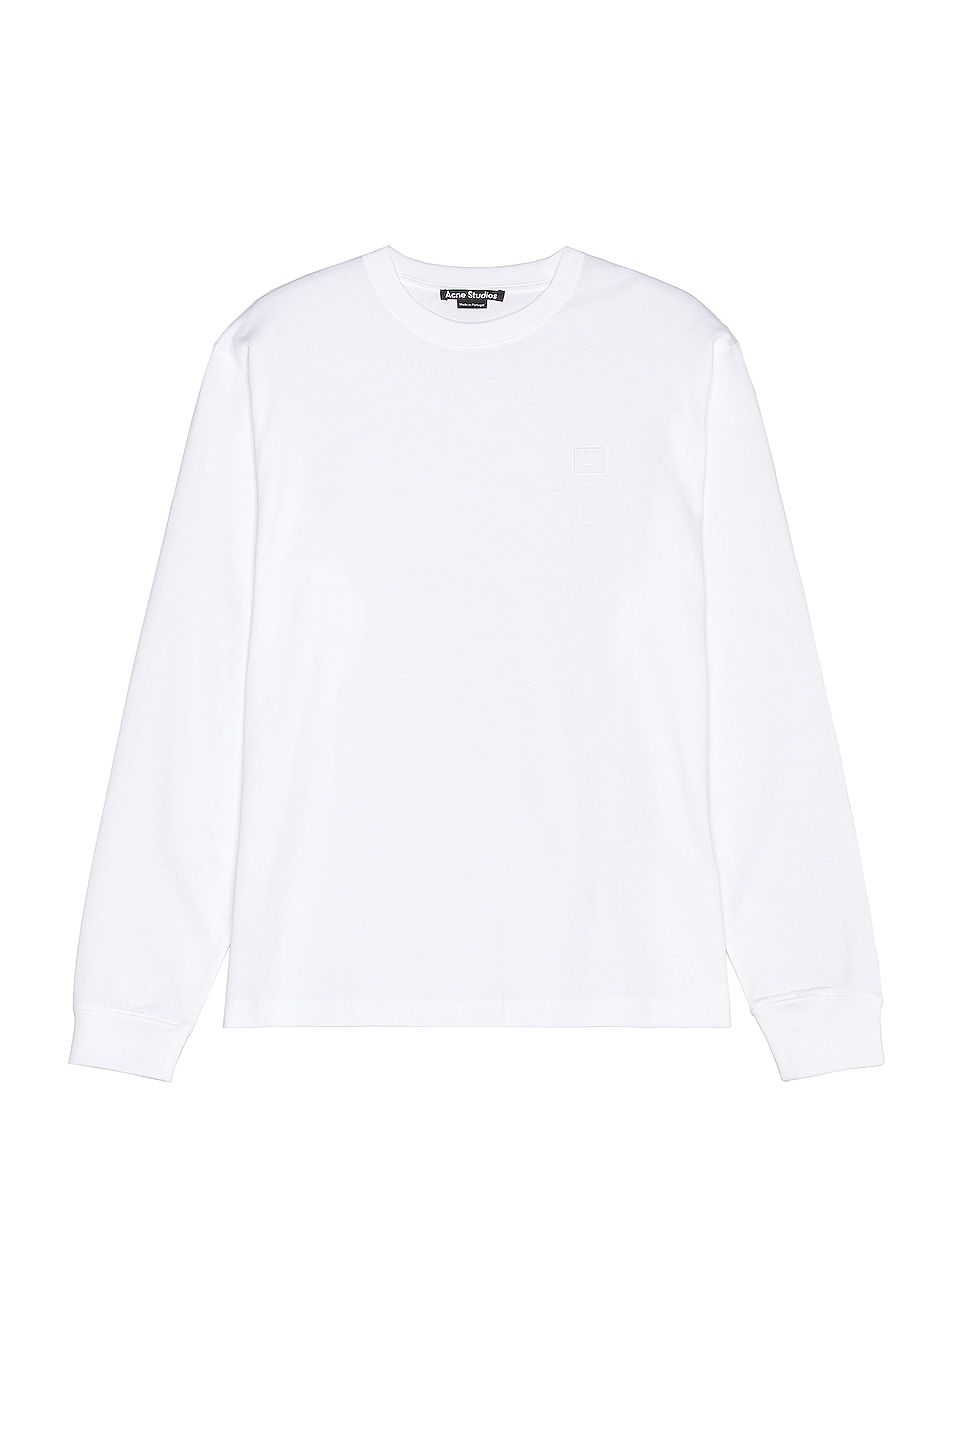 Image 1 of Acne Studios Eisen Face Tee in White in Optic White